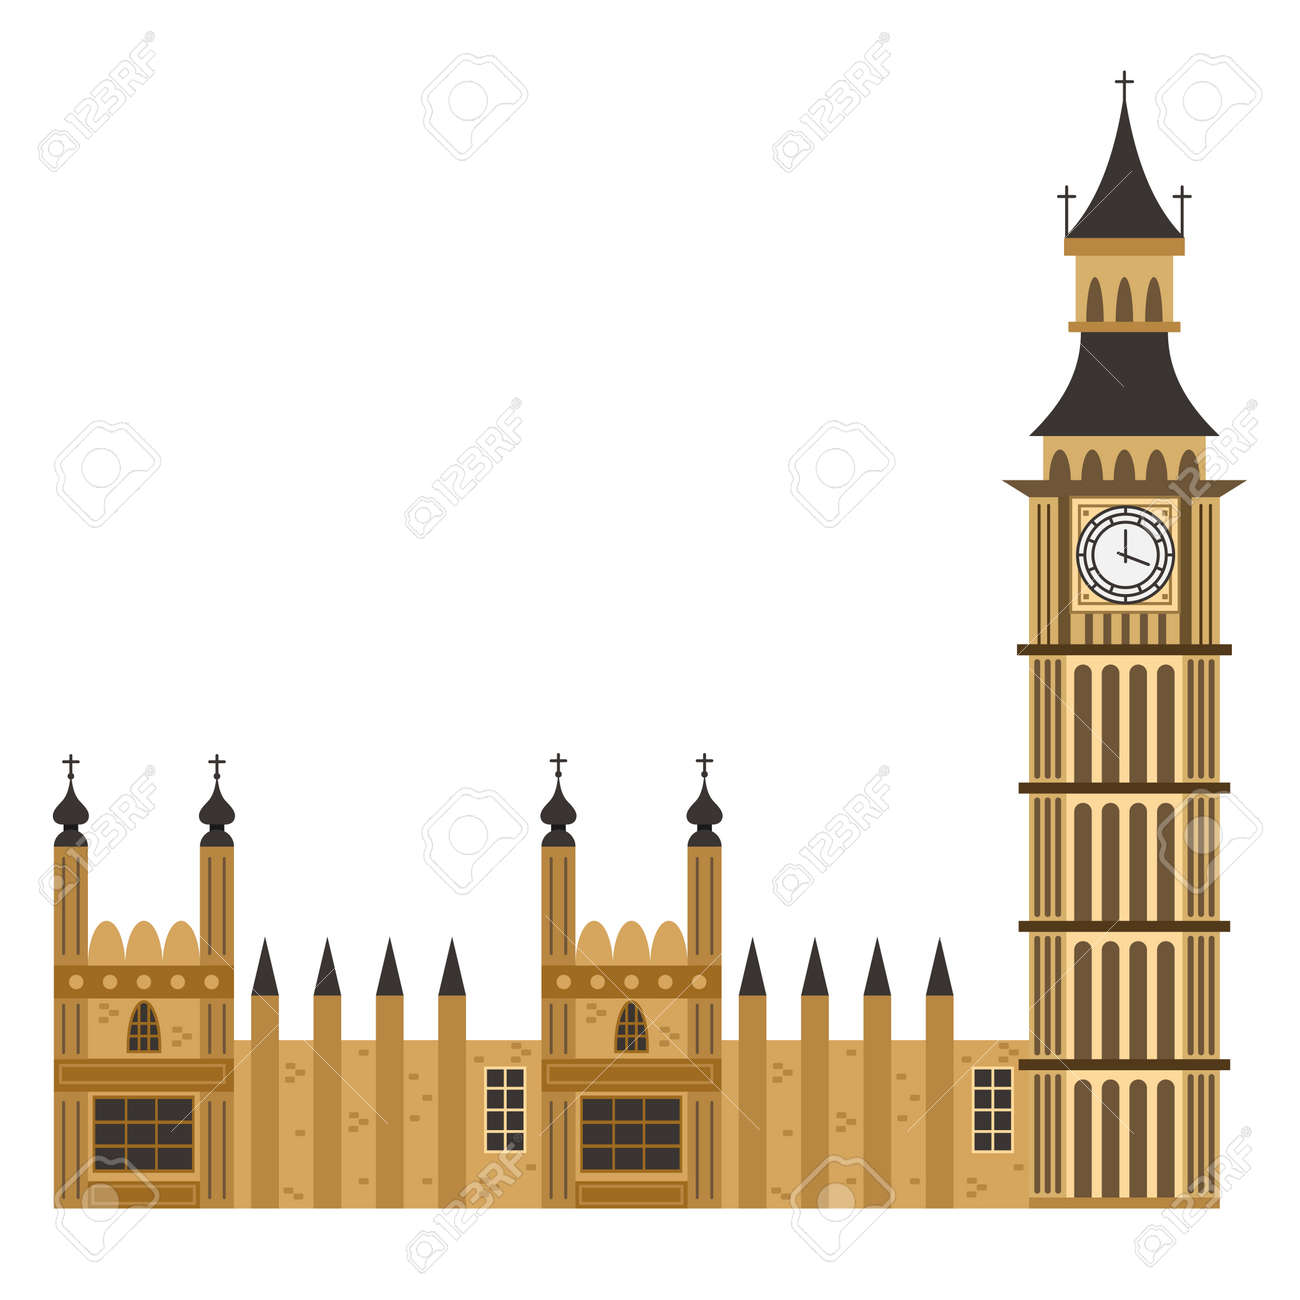 Big Ben clock tower. Vector flat icon of London building isolated on white background. - 123791841